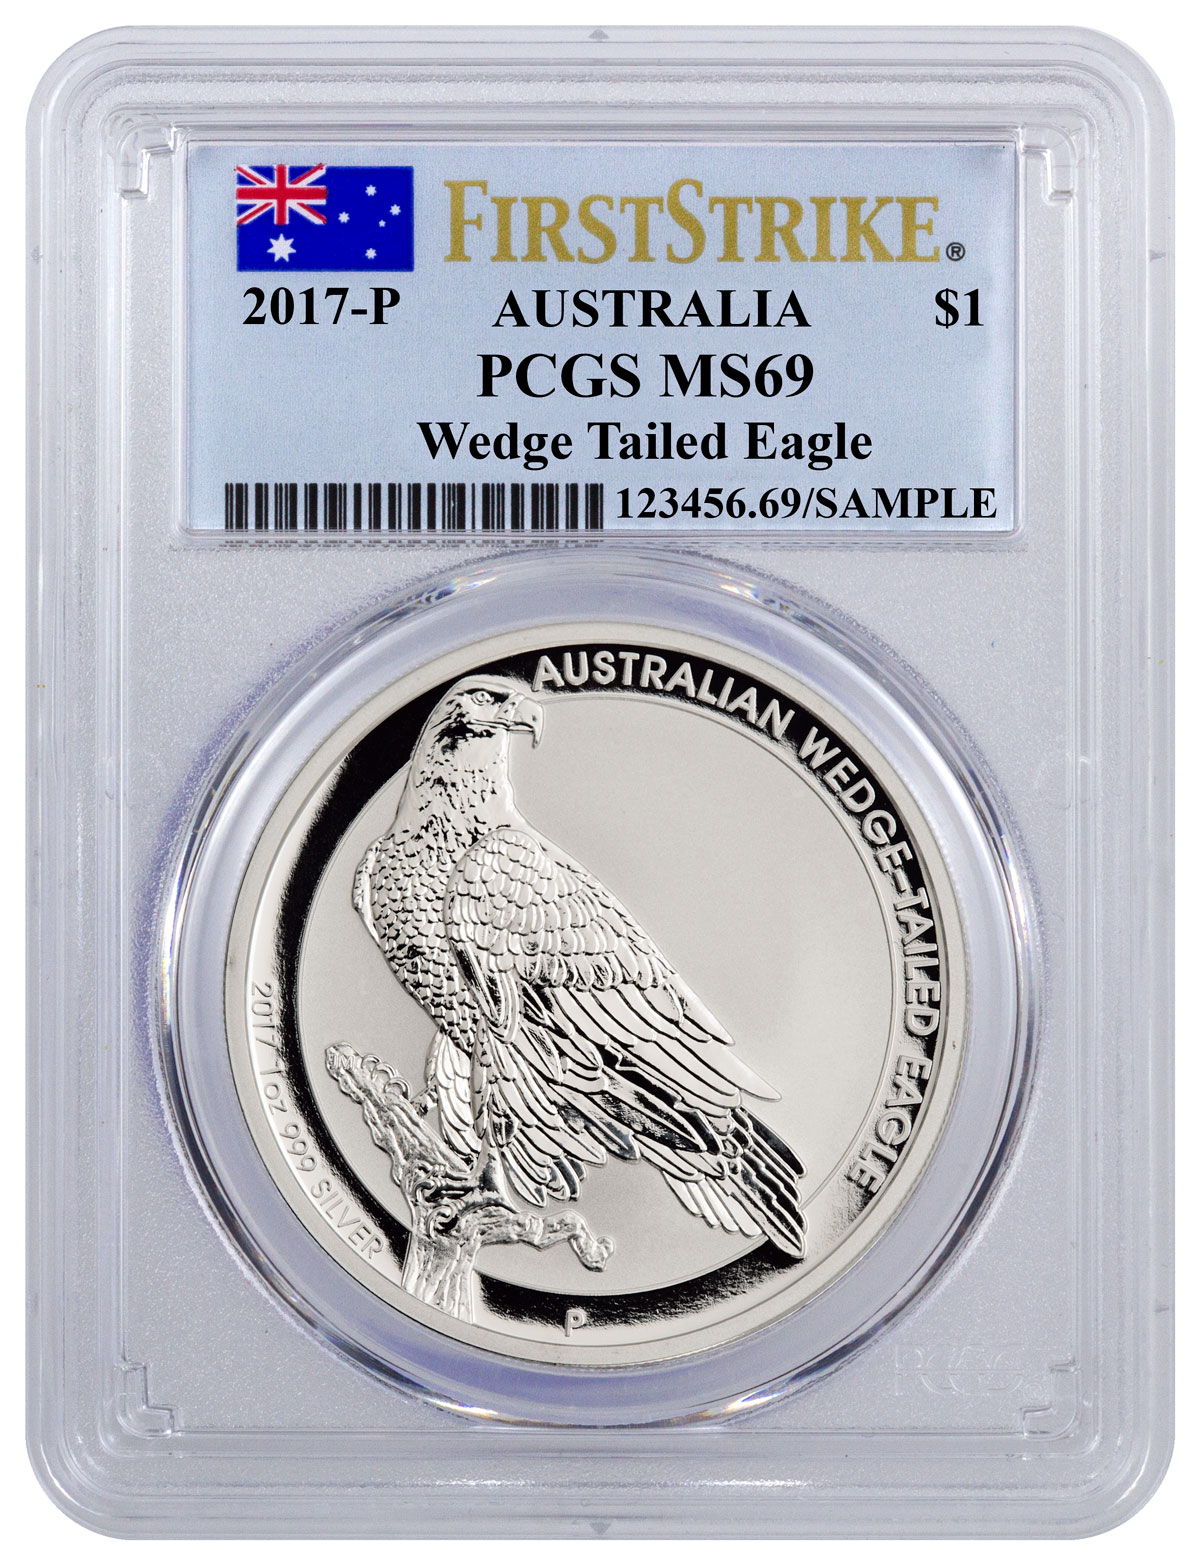 2017 Australia 1 oz Silver Wedge-Tailed Eagle $1 PCGS MS69 FS (Flag Label)